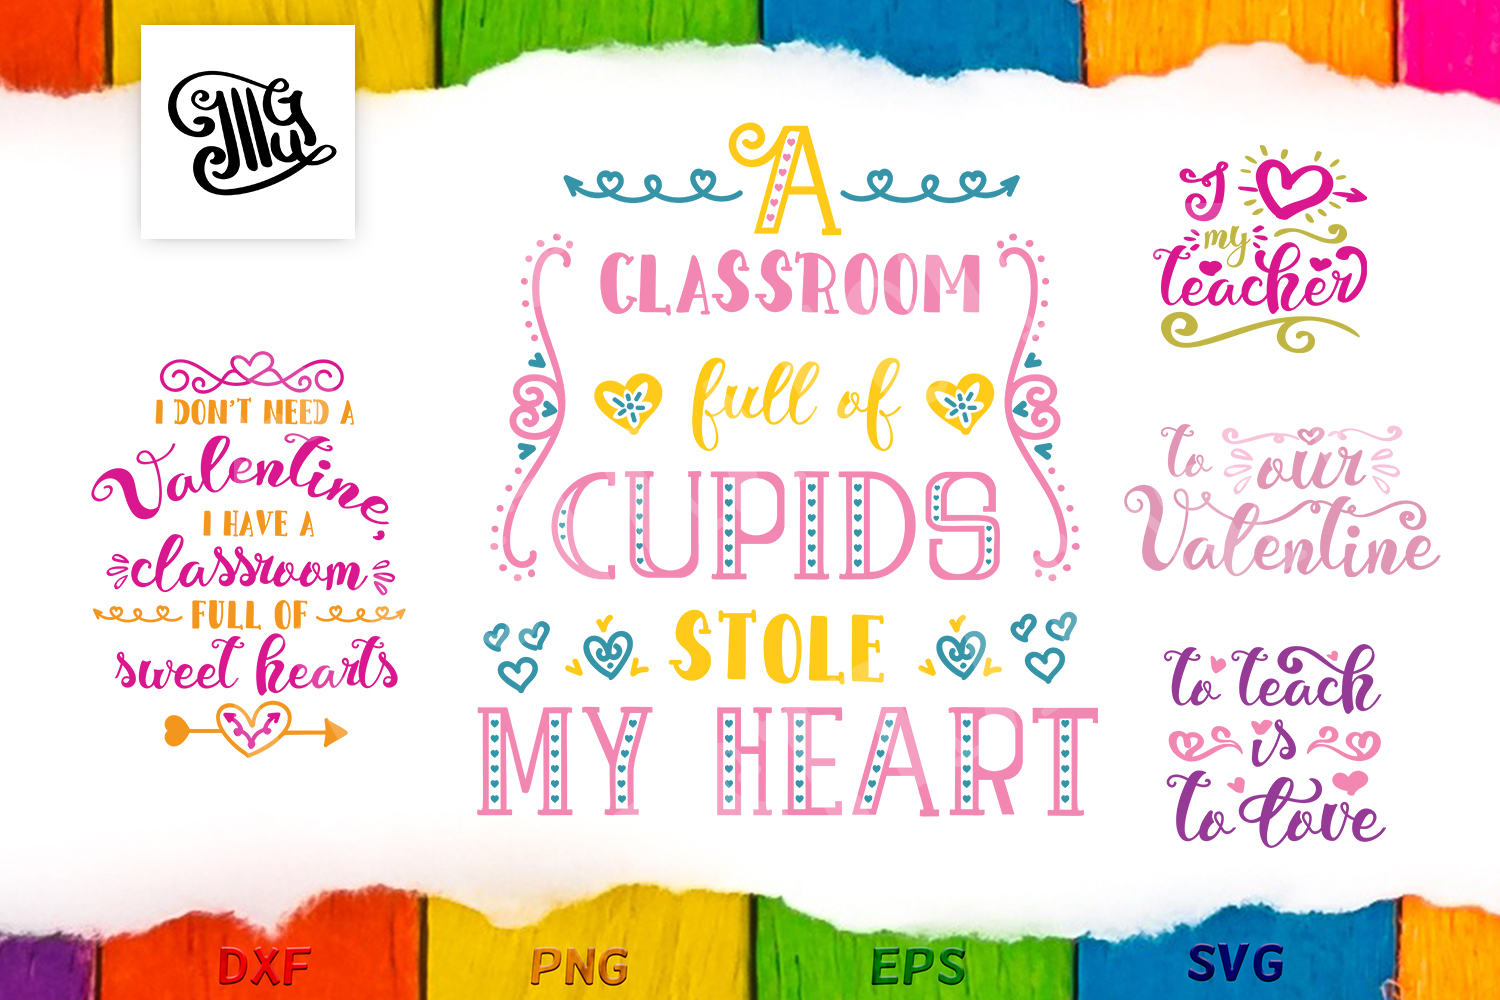 Download Free Teacher Valentine Bundle Graphic By Illustrator Guru Creative for Cricut Explore, Silhouette and other cutting machines.